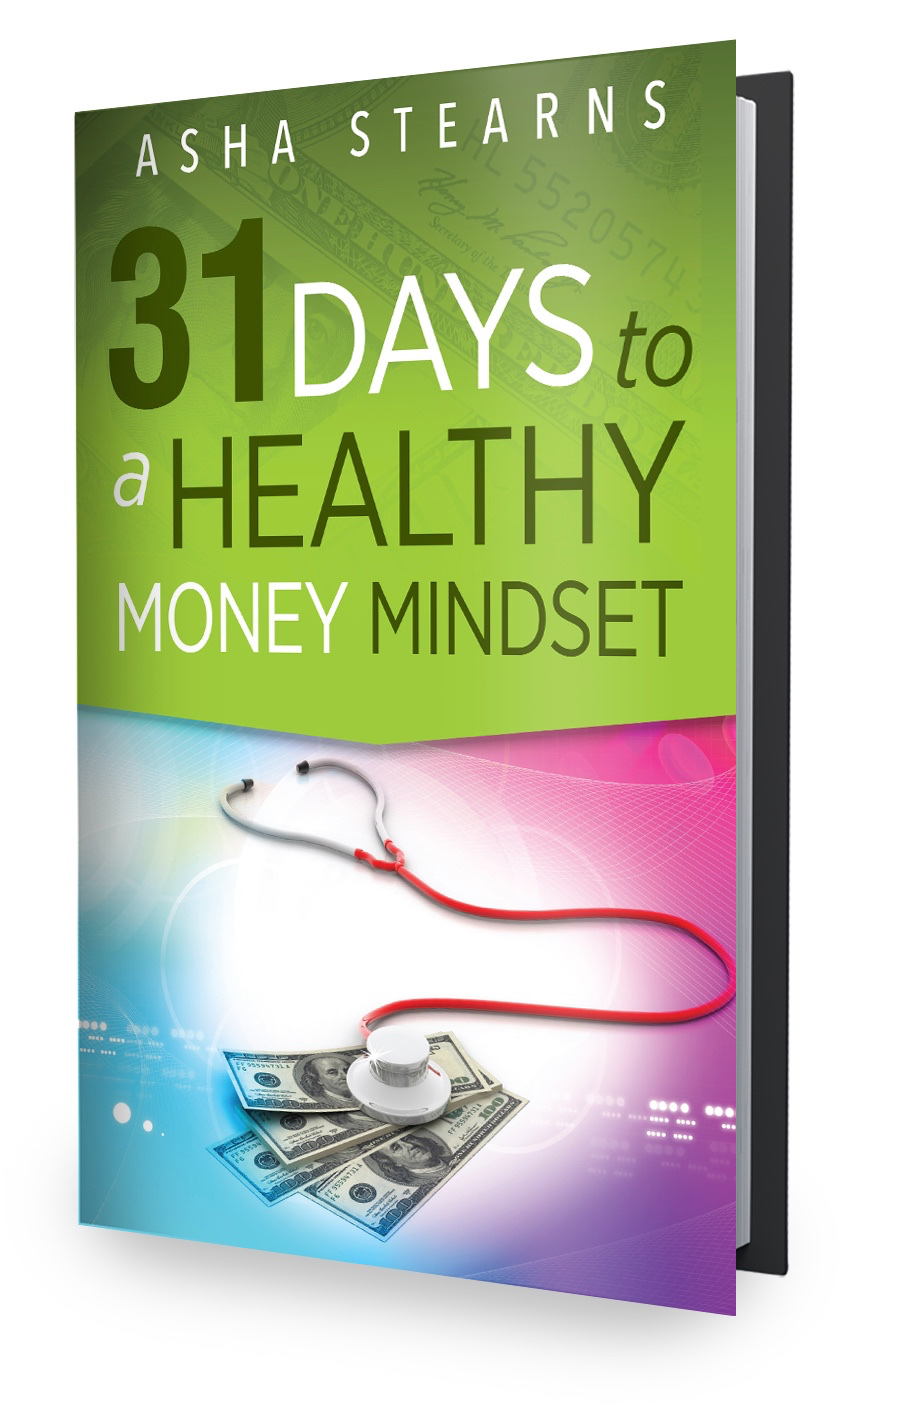 Welcome to the start of reprogramming your money mindset. We have thought some negative things about money that has stopped us from having money. The first step to having money is to develop a Healthy Money Mindset.  For the next 31 days, you are going to turn your unhealthy money thoughts into healthy money thoughts. Each day, you will declare Healthy money thoughts into the atmosphere throughout the entire day. Along with the declaration, you will have a Money Action Plan that will help you plan and strategize your money for the better. I believe that if you do this every single day for the rest of your life not only will your mindset be Healthy but also you will live a Wealthy Life.